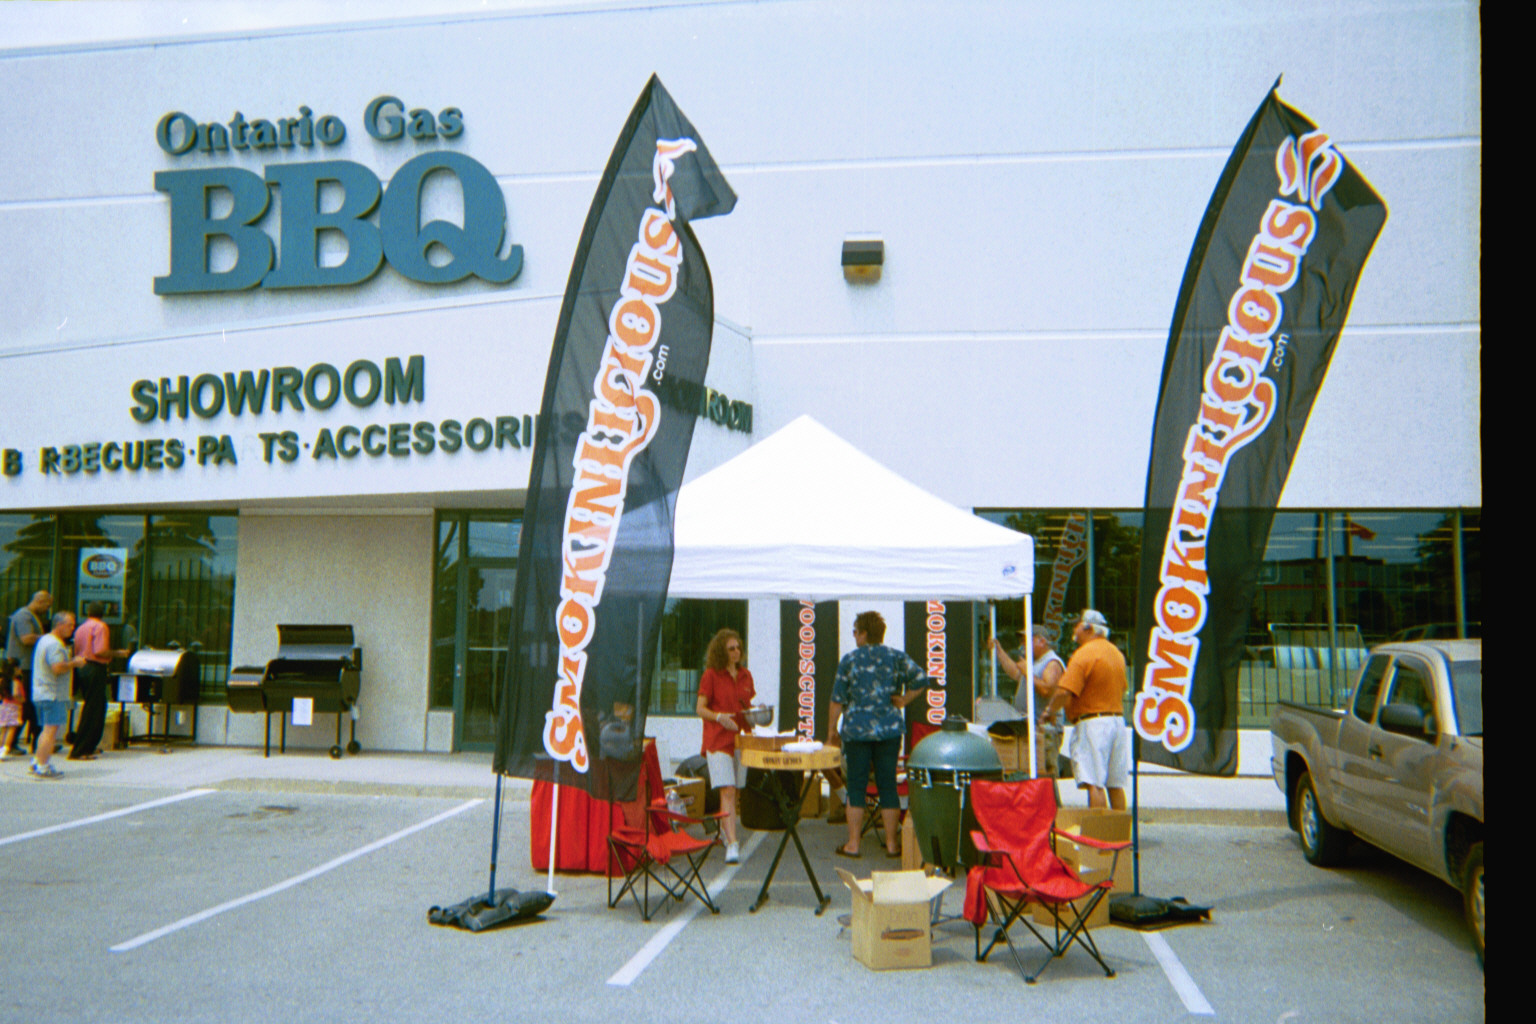 Ontario Gas BBQ and Smokinlicious Tent